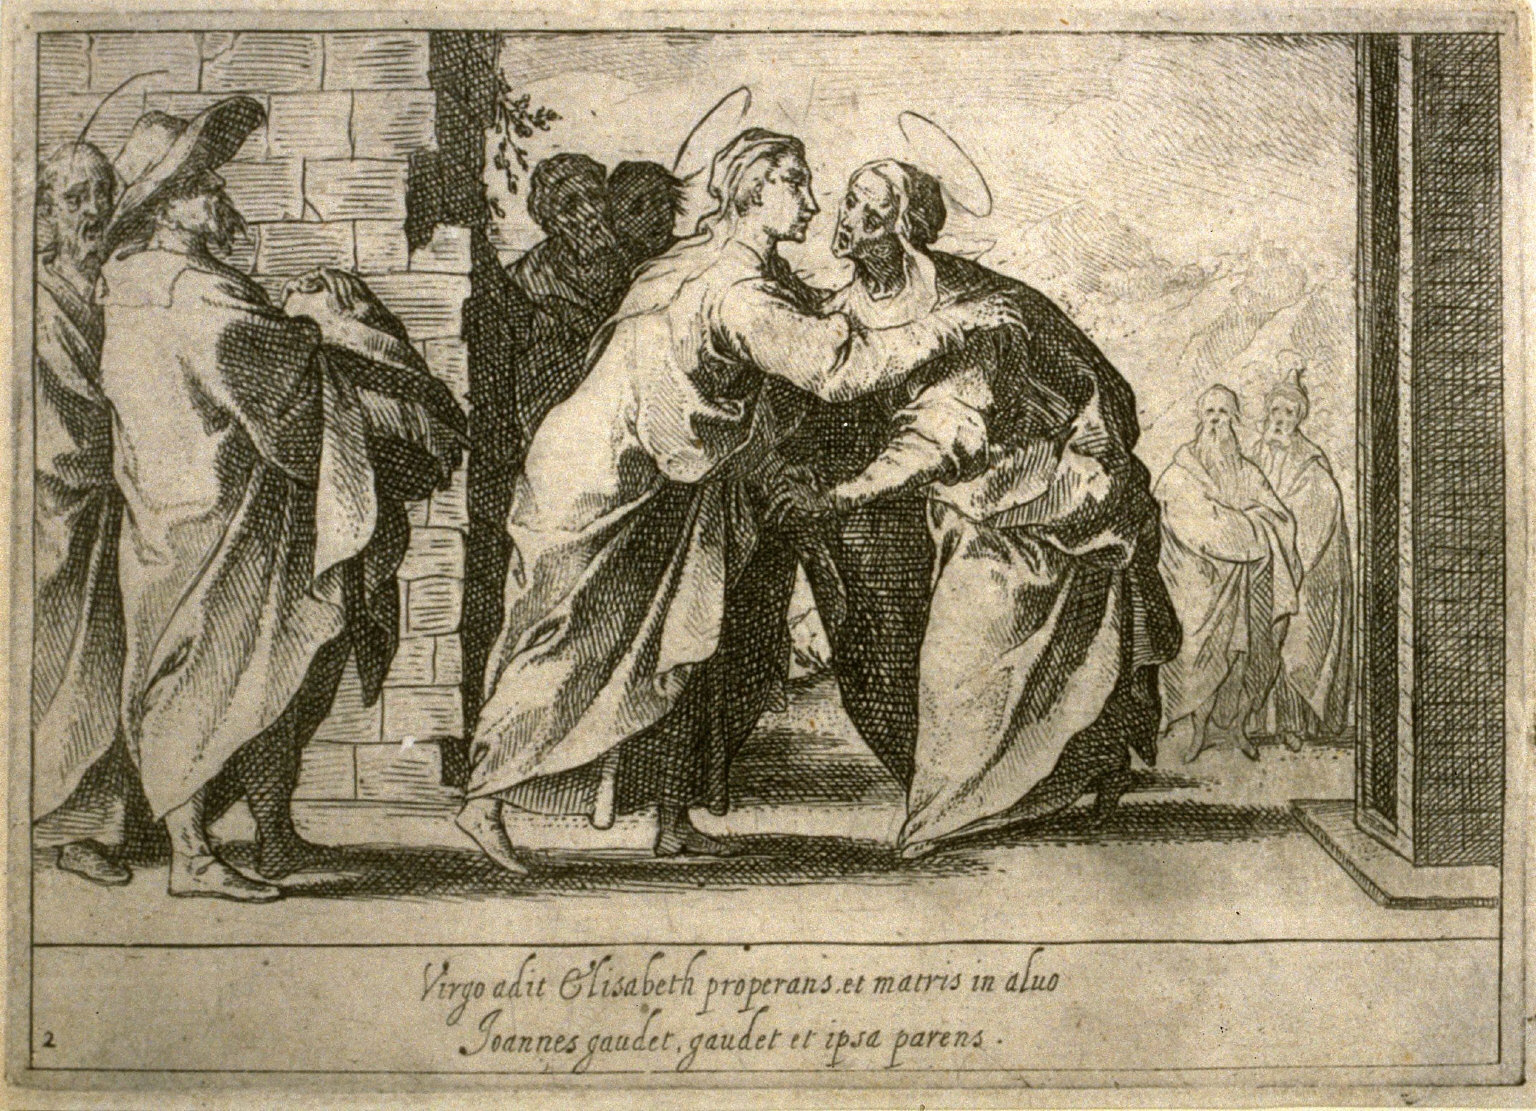 The Visitation, plate 2, third of sixteen plates from the set Quindecim Mysteria Rosarii Beatæ Mariæ Virginis (Mysteries of the Rosary